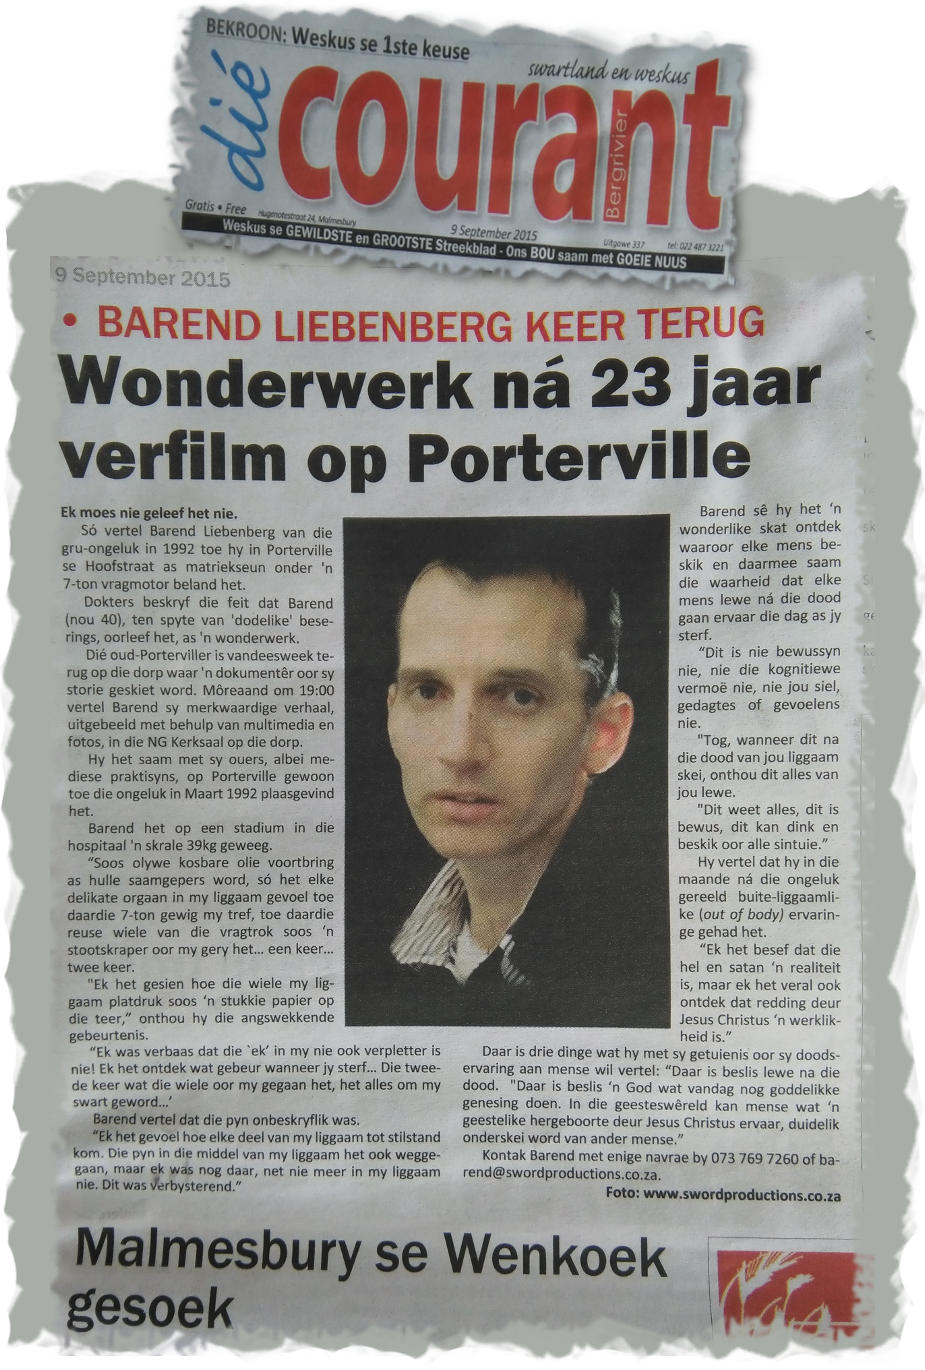 Die Courant artikel: 'After Death' documentary in the making of Barend Liebenberg's accident in 1992, Porterville, South Africa